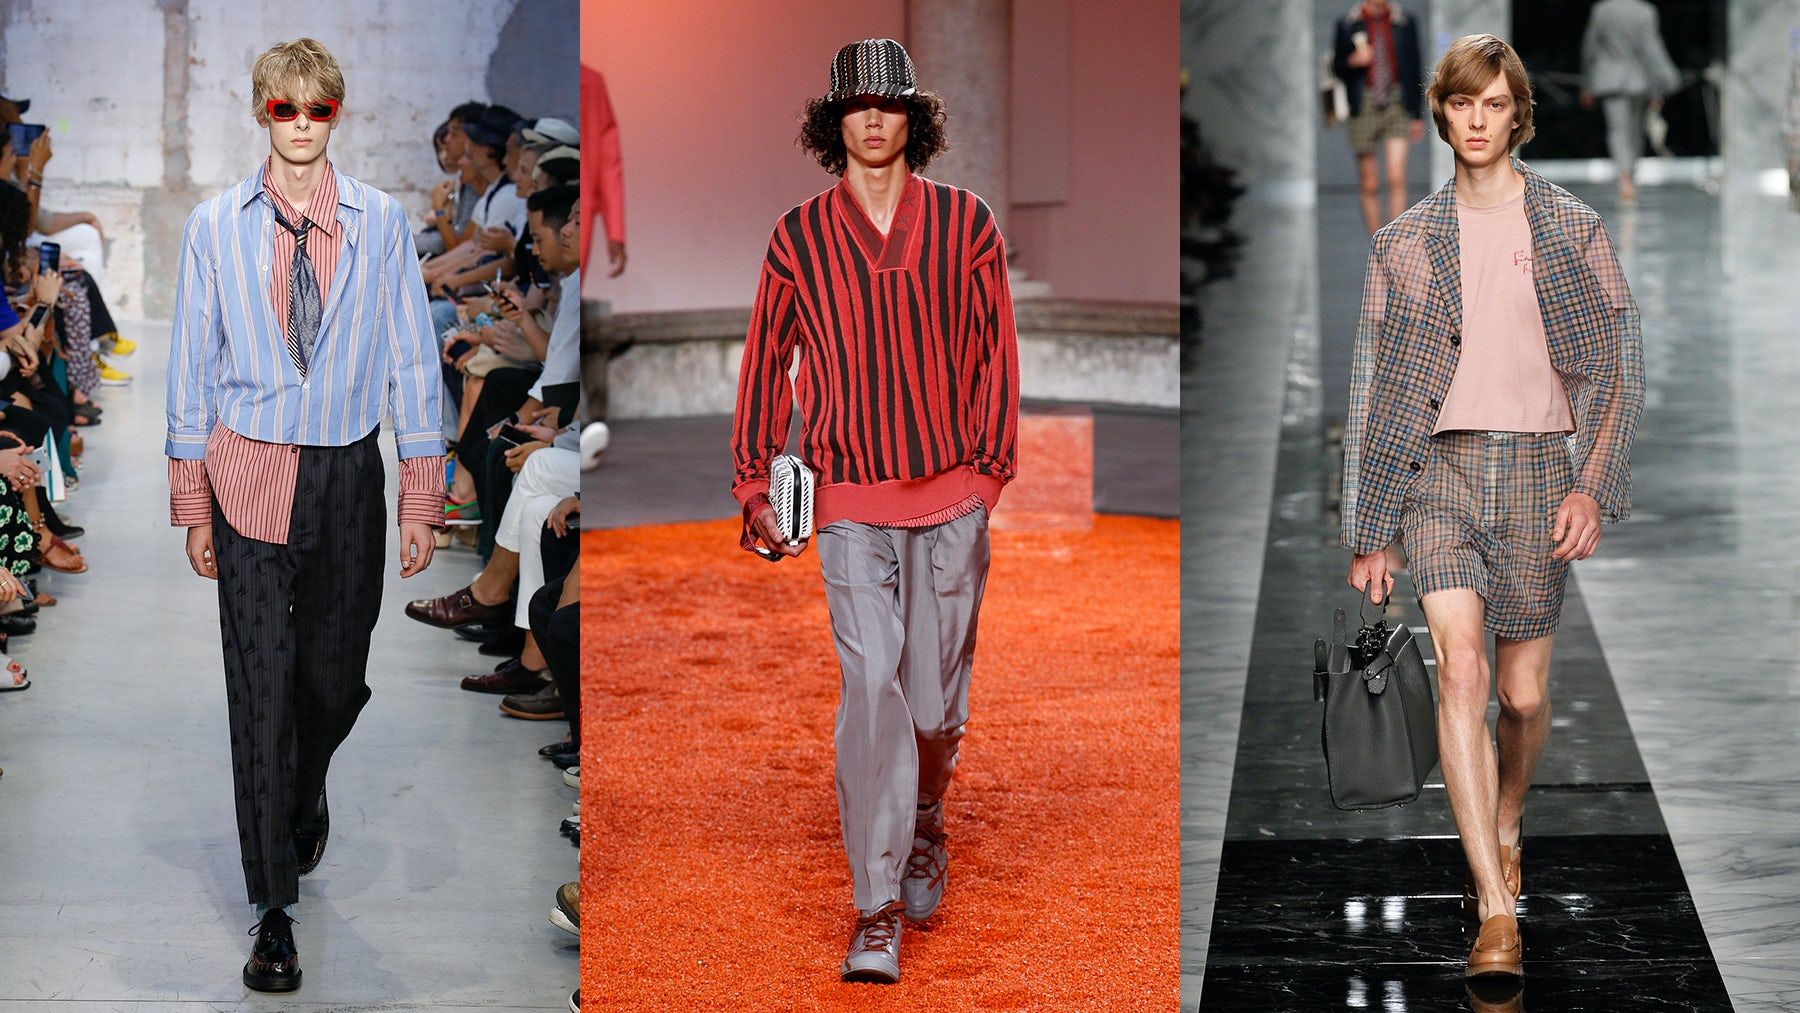 Looks from Marni, Ermenegildo Zegna and Fendi Spring 2018 menswear collections | Source: InDigital